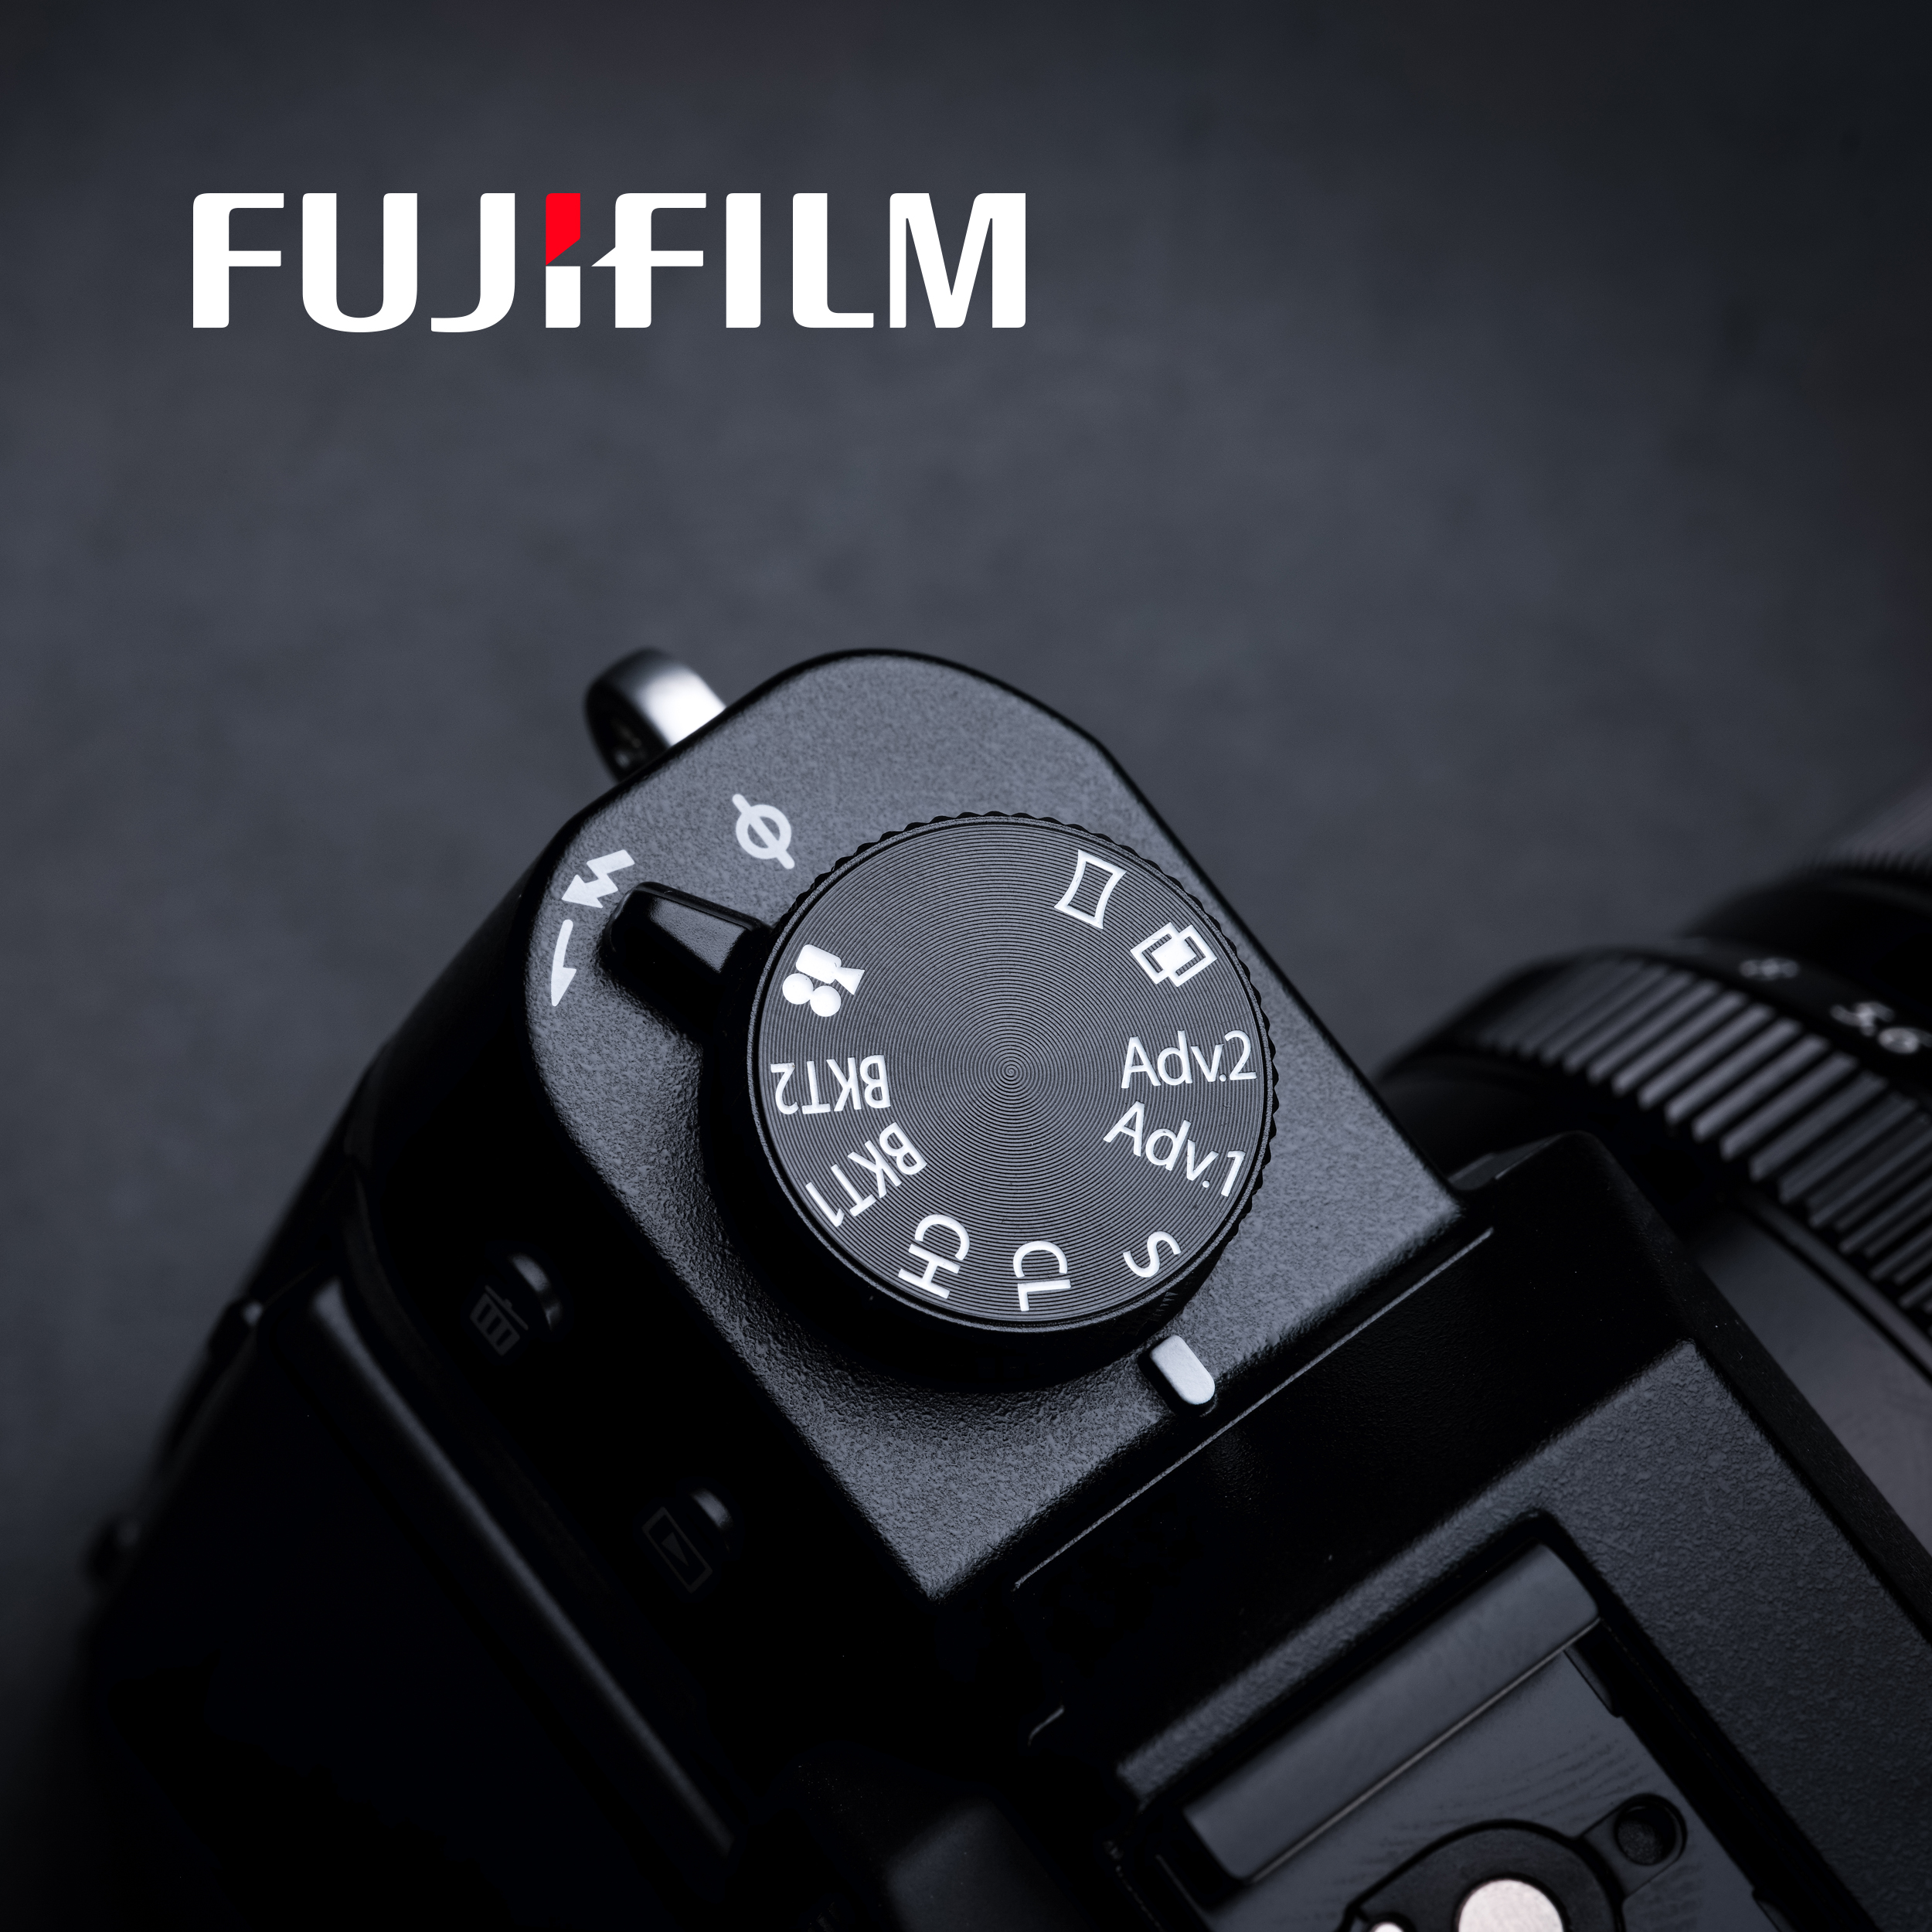 FUJIFILM - Thanks to FujiFilm for sponsoring some of the lenses to the Fuji X-T2.Check out their gear at:http://www.fujifilm.com